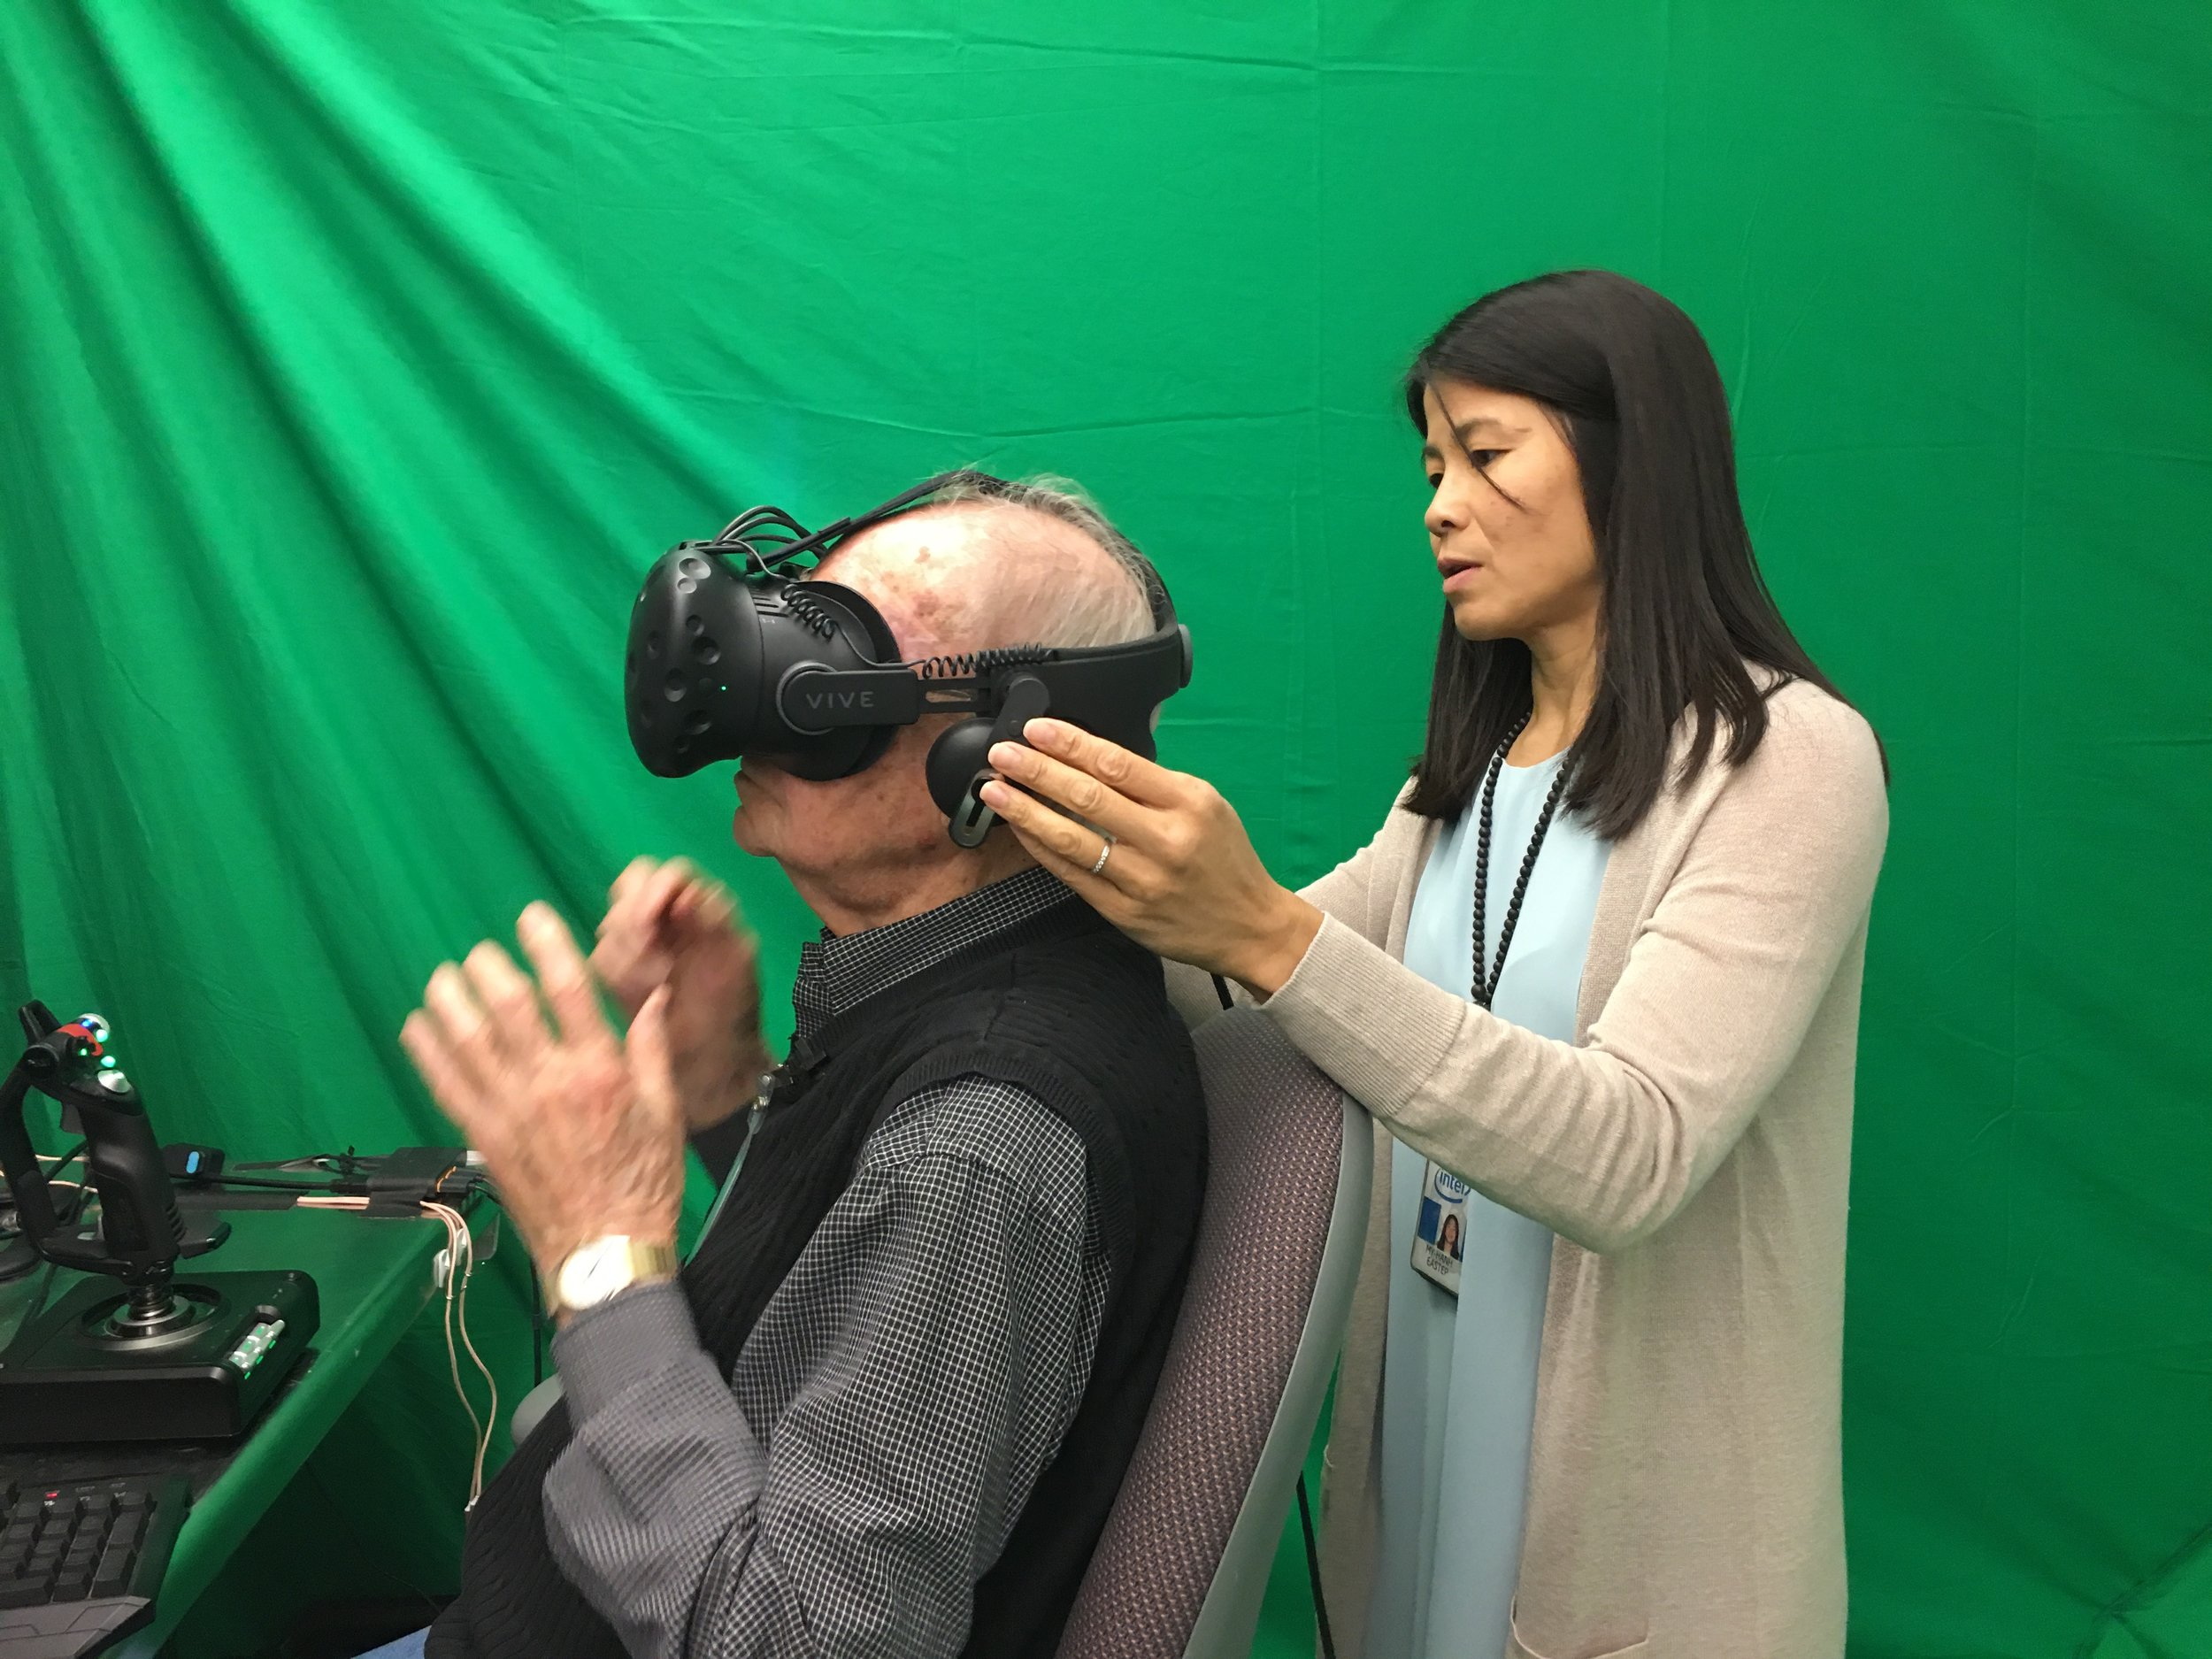 My-Hanh Eastep helps Lyle get ready for his virtual flight.